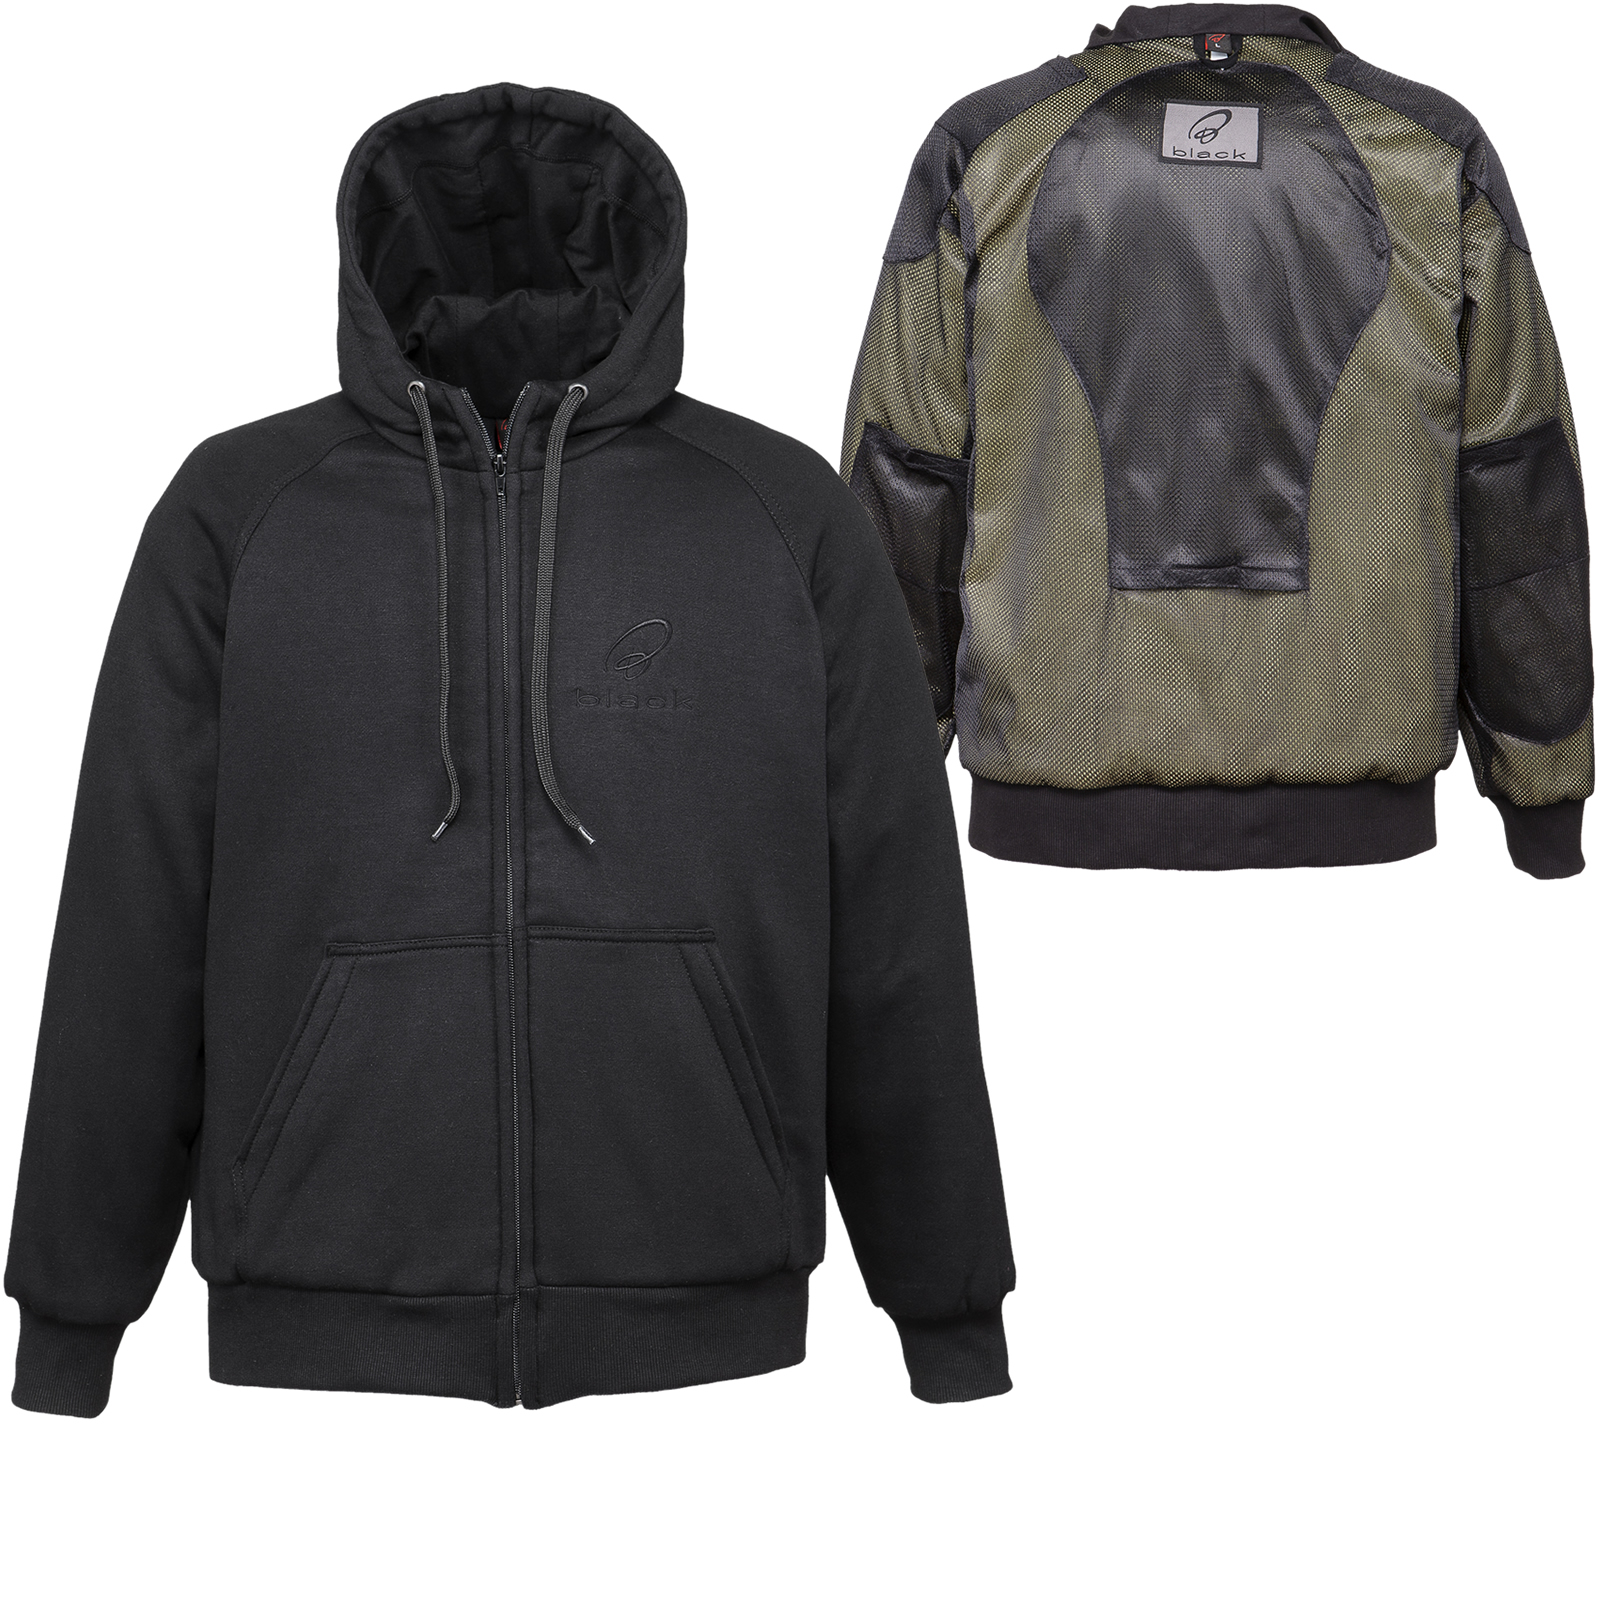 Best Motorcycle Jacket >> Black Lynx Kevlar Motorcycle Hoodie - New Arrivals - Ghostbikes.com